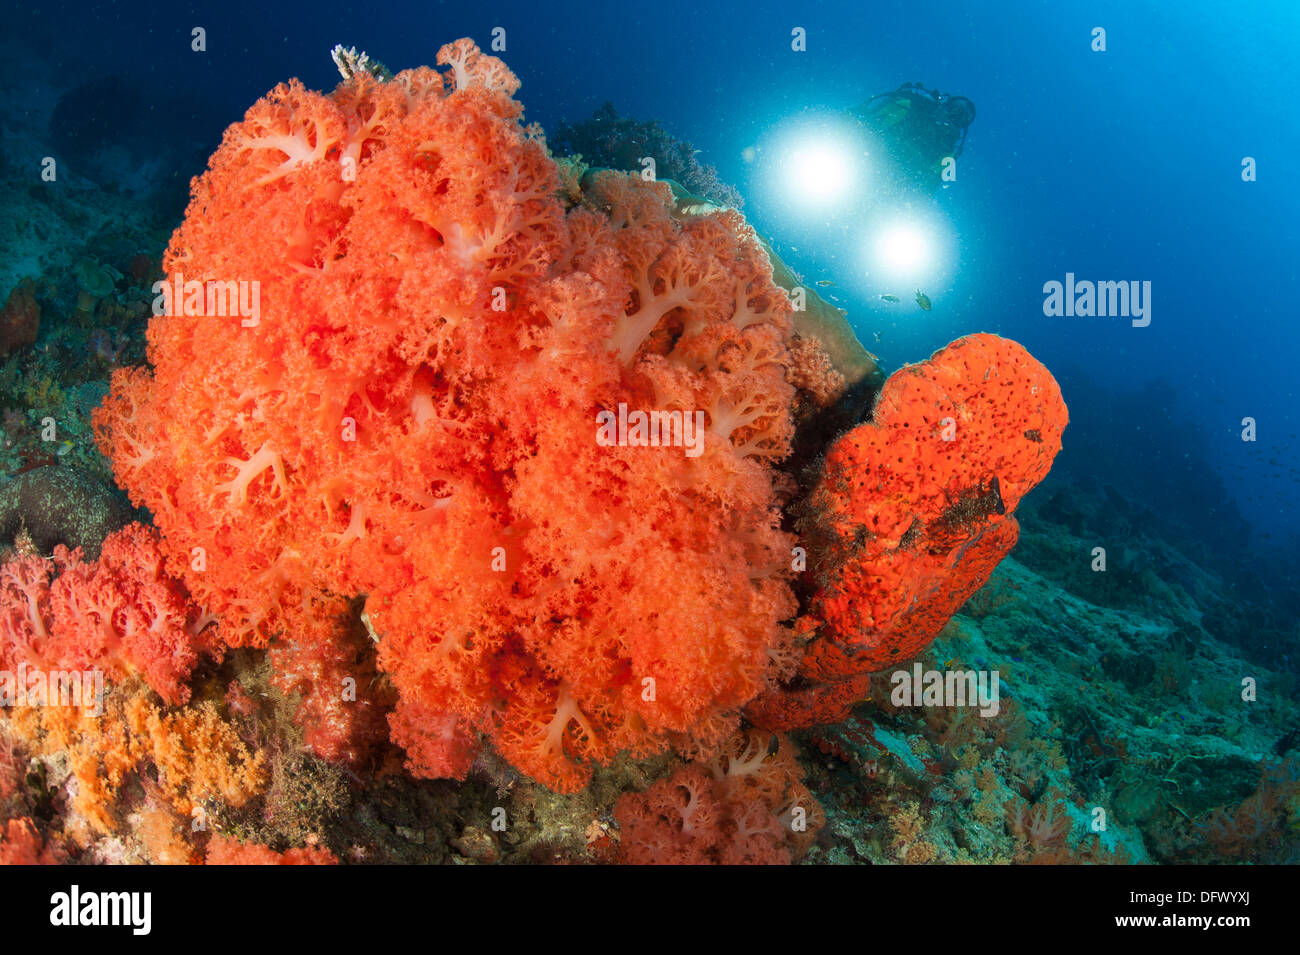 Colorful reefs in Raja Ampat covered in orange Dendronephthya soft corals, West Papua, Indonesia. Stock Photo